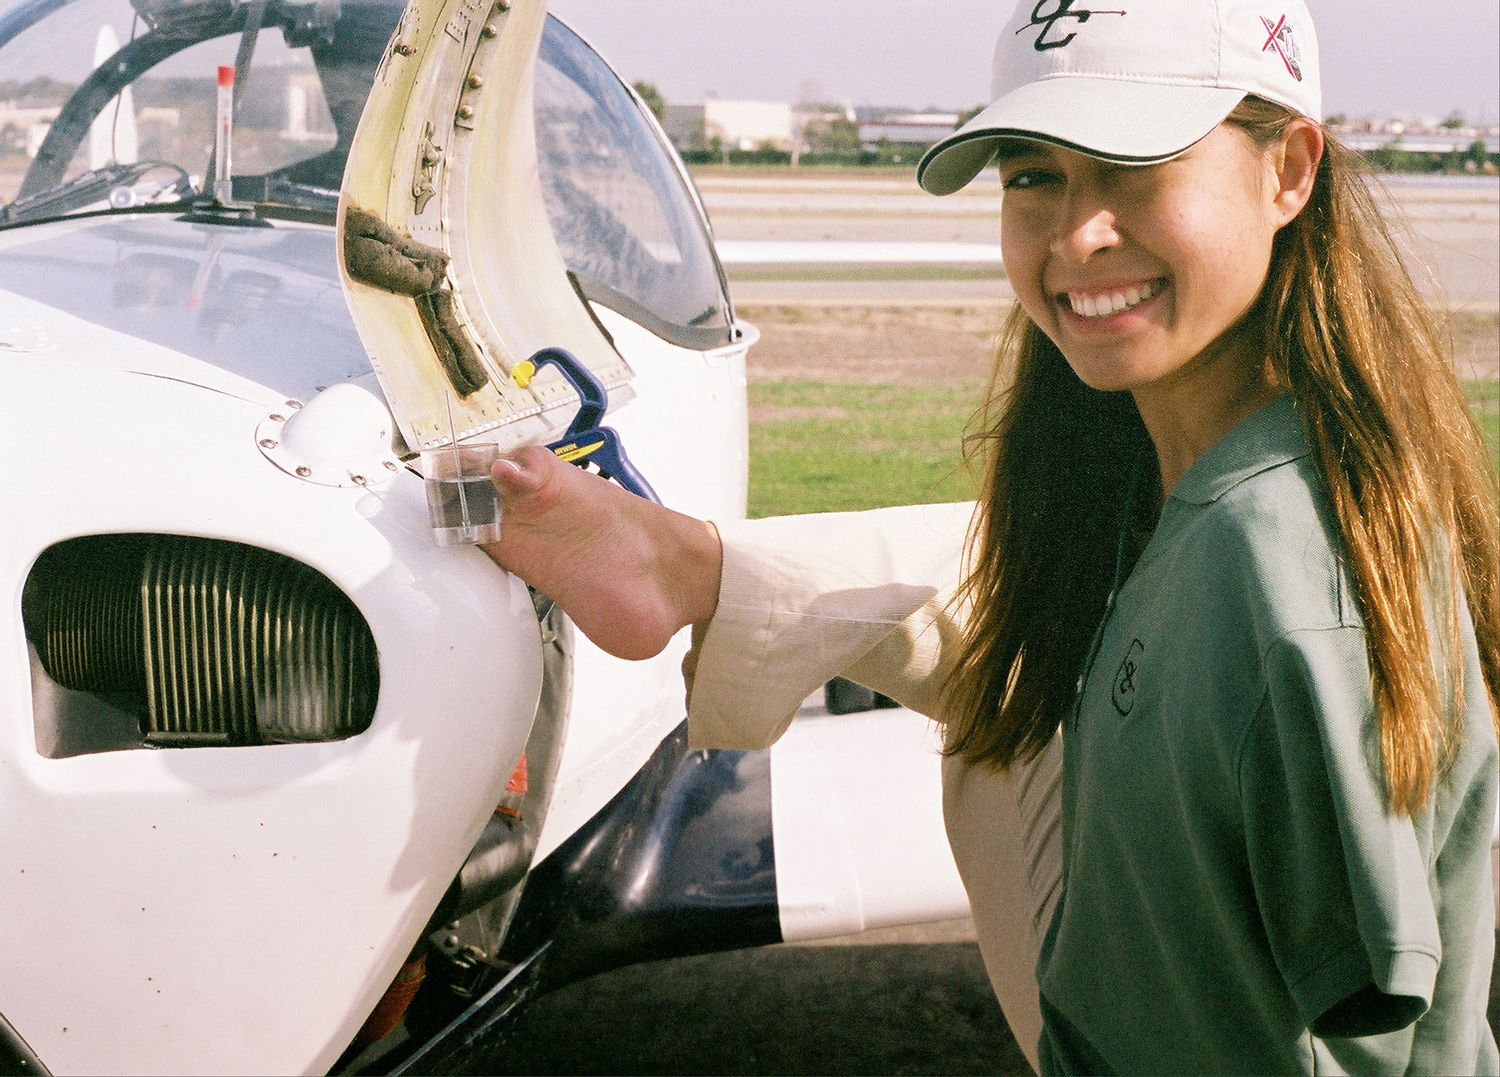 Jessica checking on her plane before take-off  (CourtesyofJessicaCoxMotivationalServices)